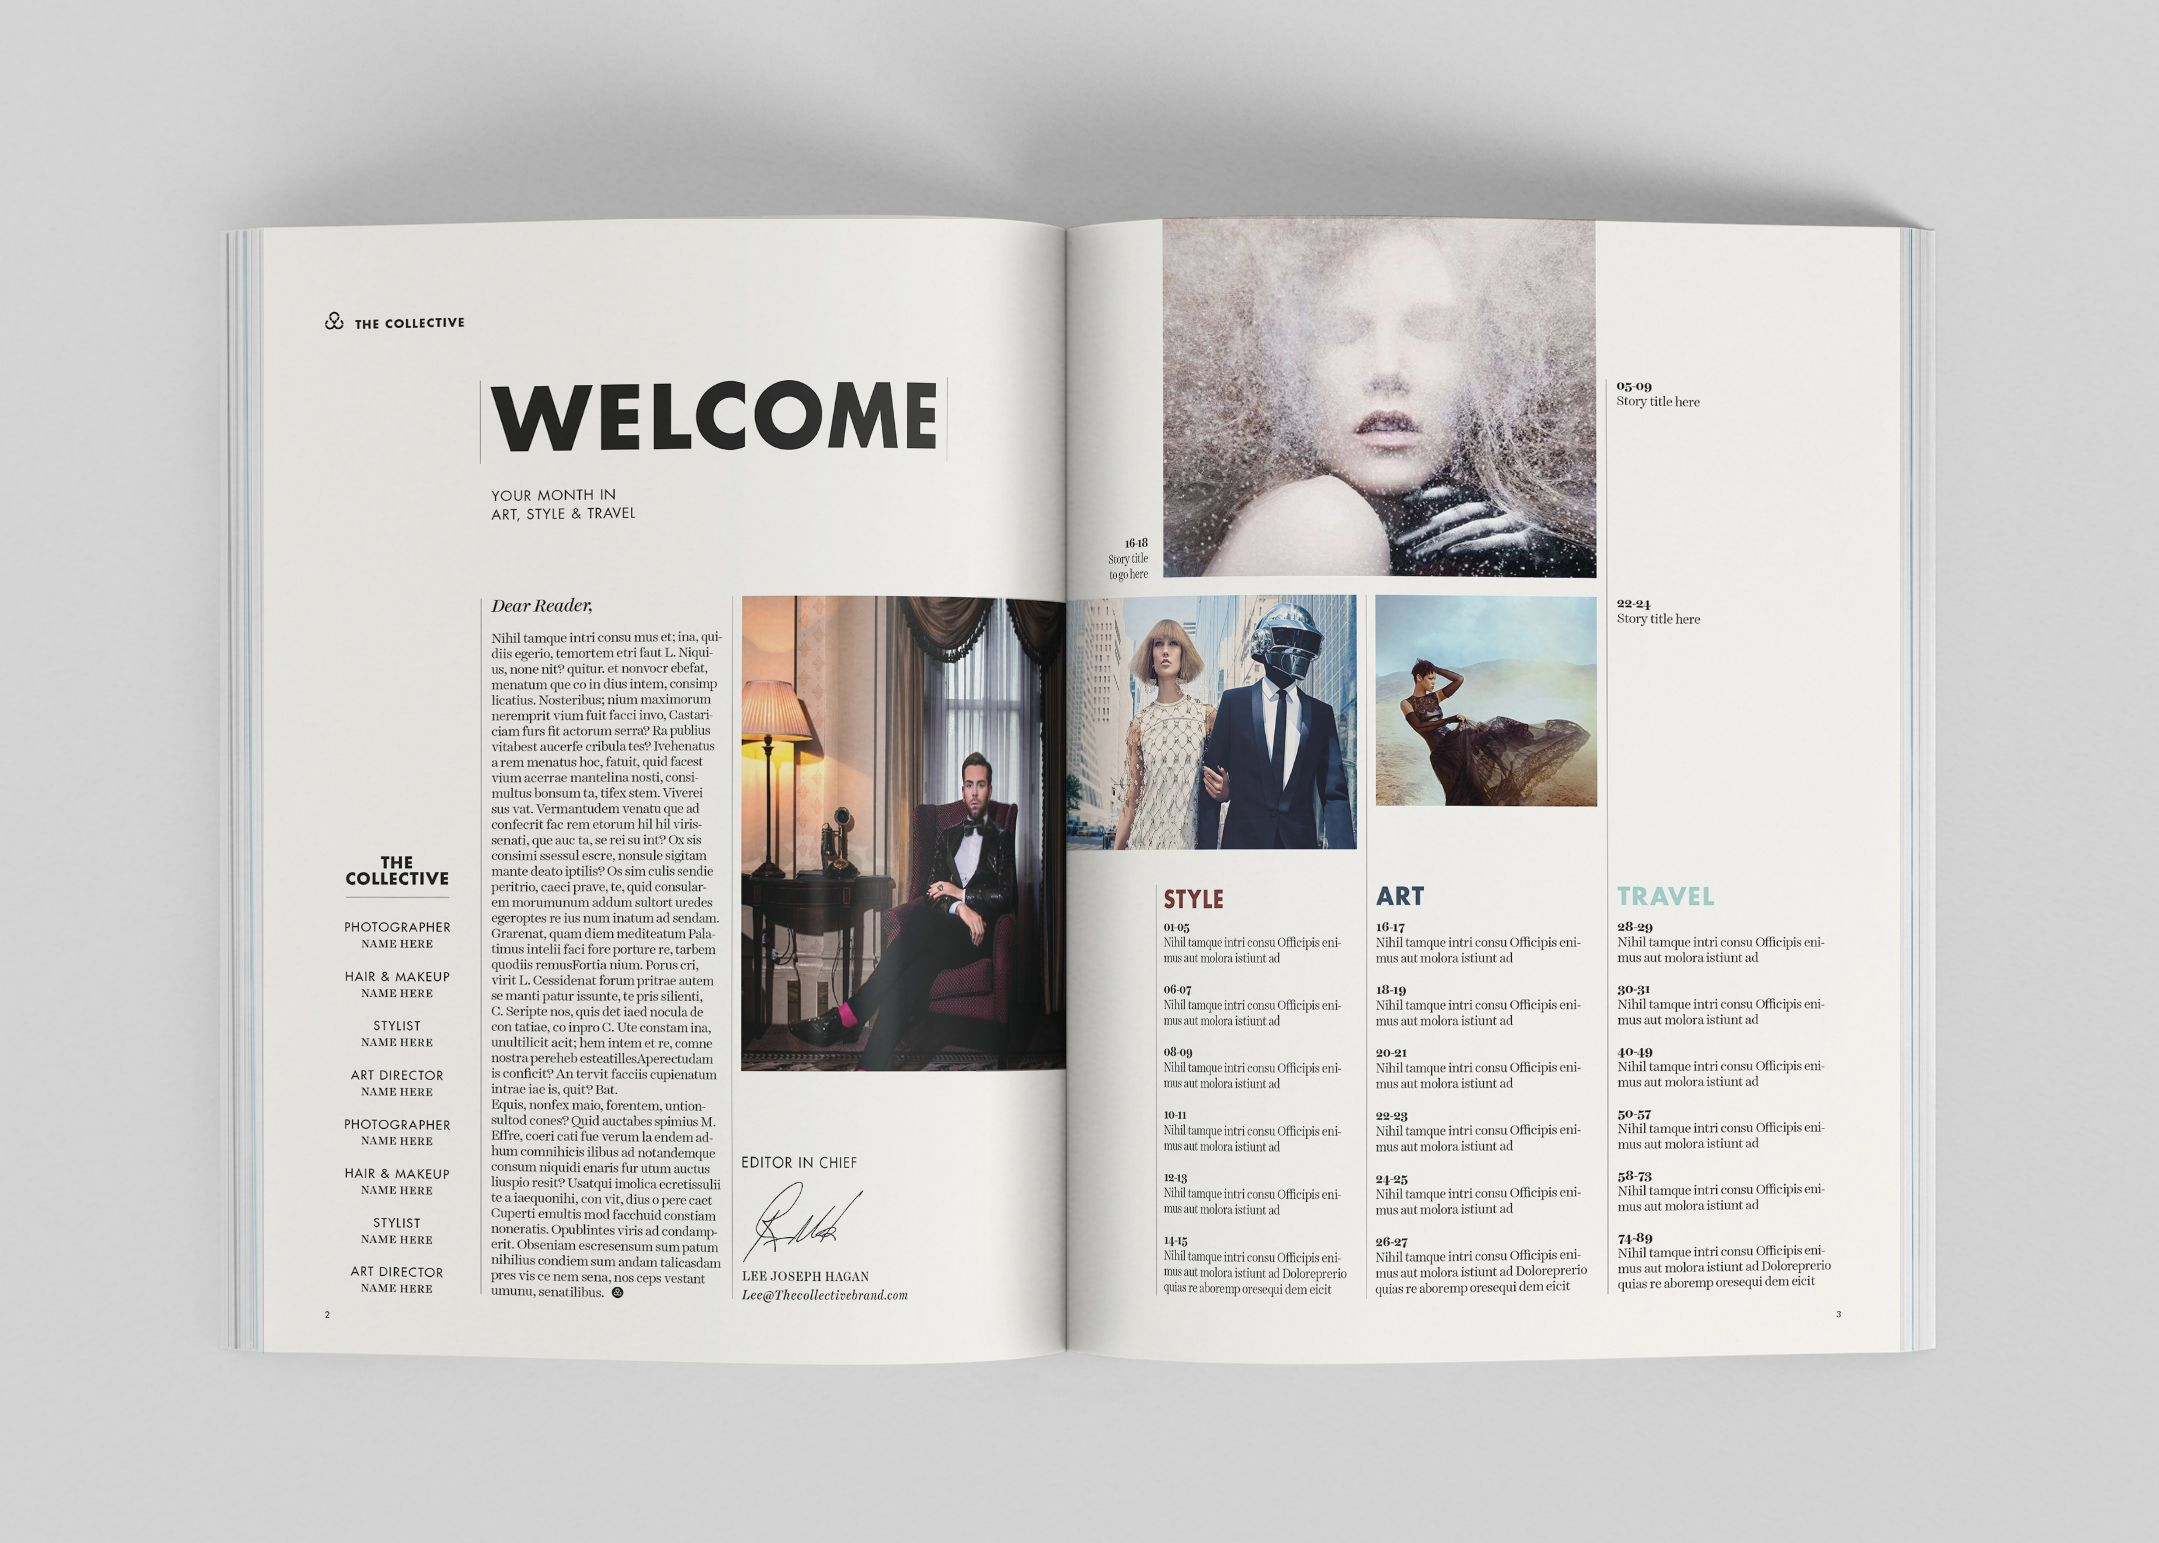 01 Jpg Magazine Layout Magazine Layout Inspiration Contents